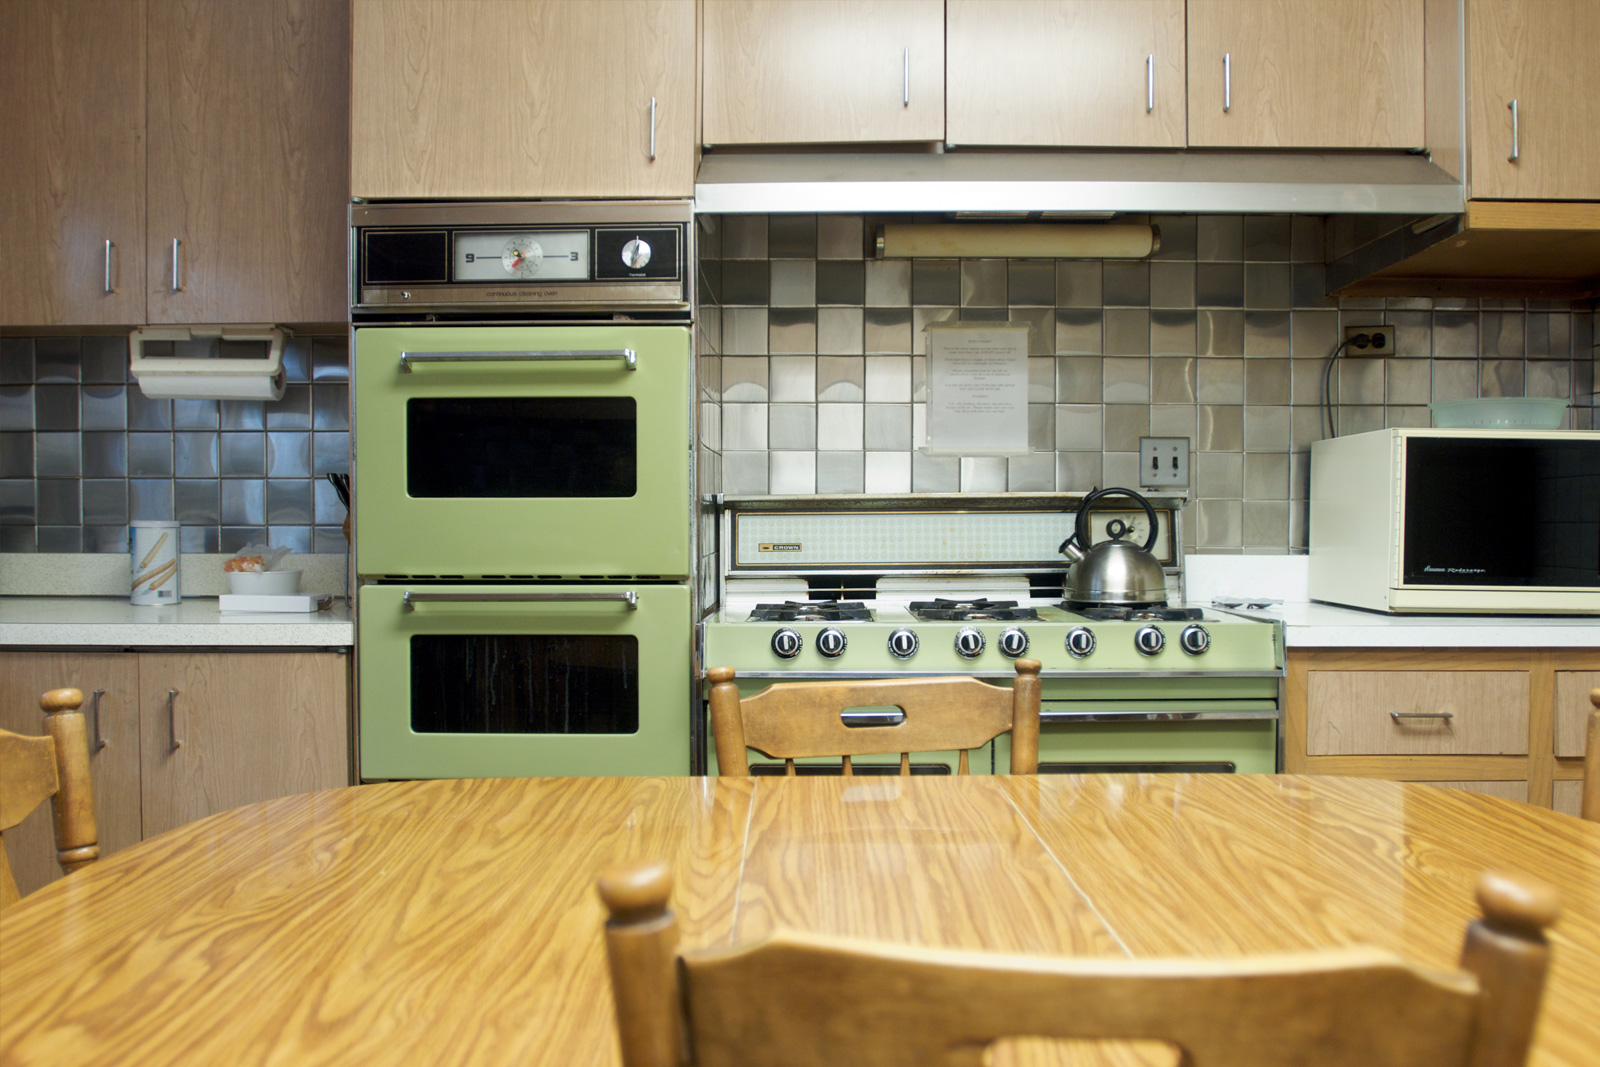 kitchen-materials-standard_438d271a1b5a327068a858ea0c29d0cd